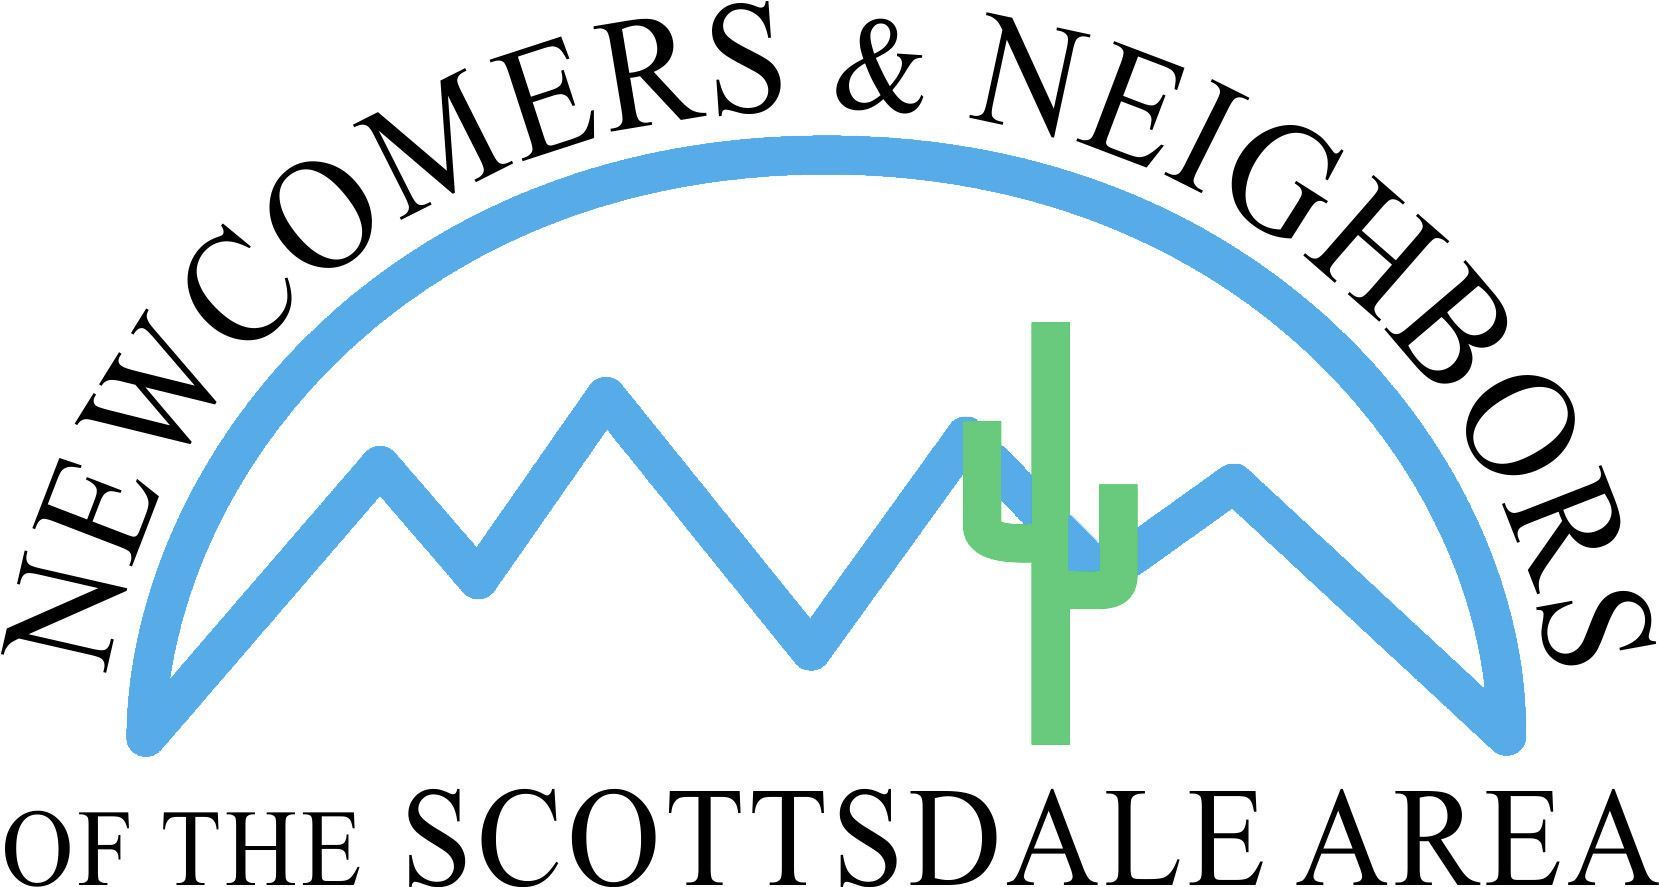 Newcomers & Neighbors of the Scottsdale Area - Events